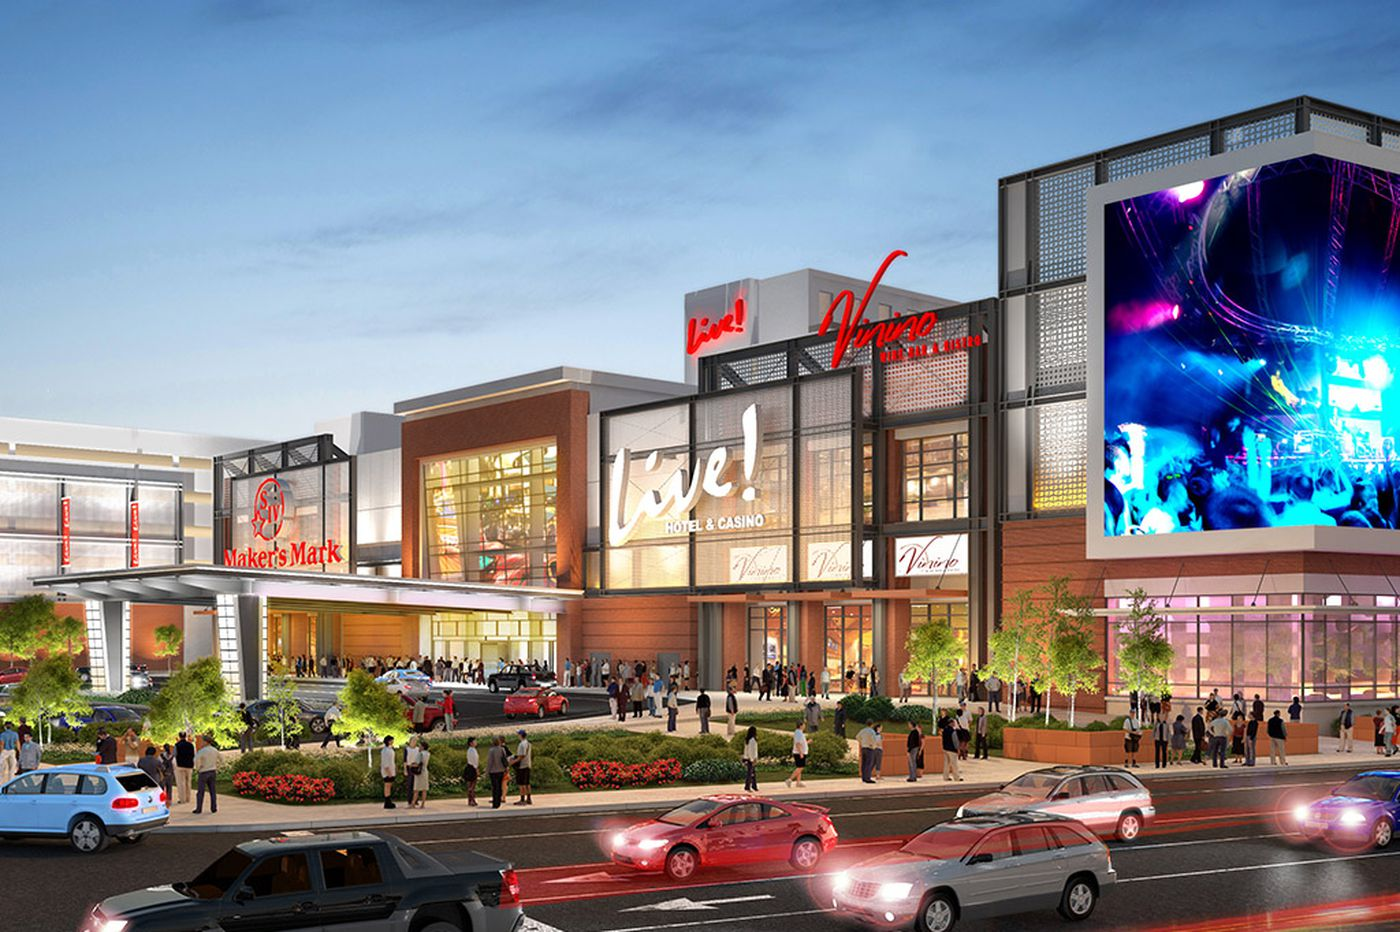 Challenge in works on second casino license